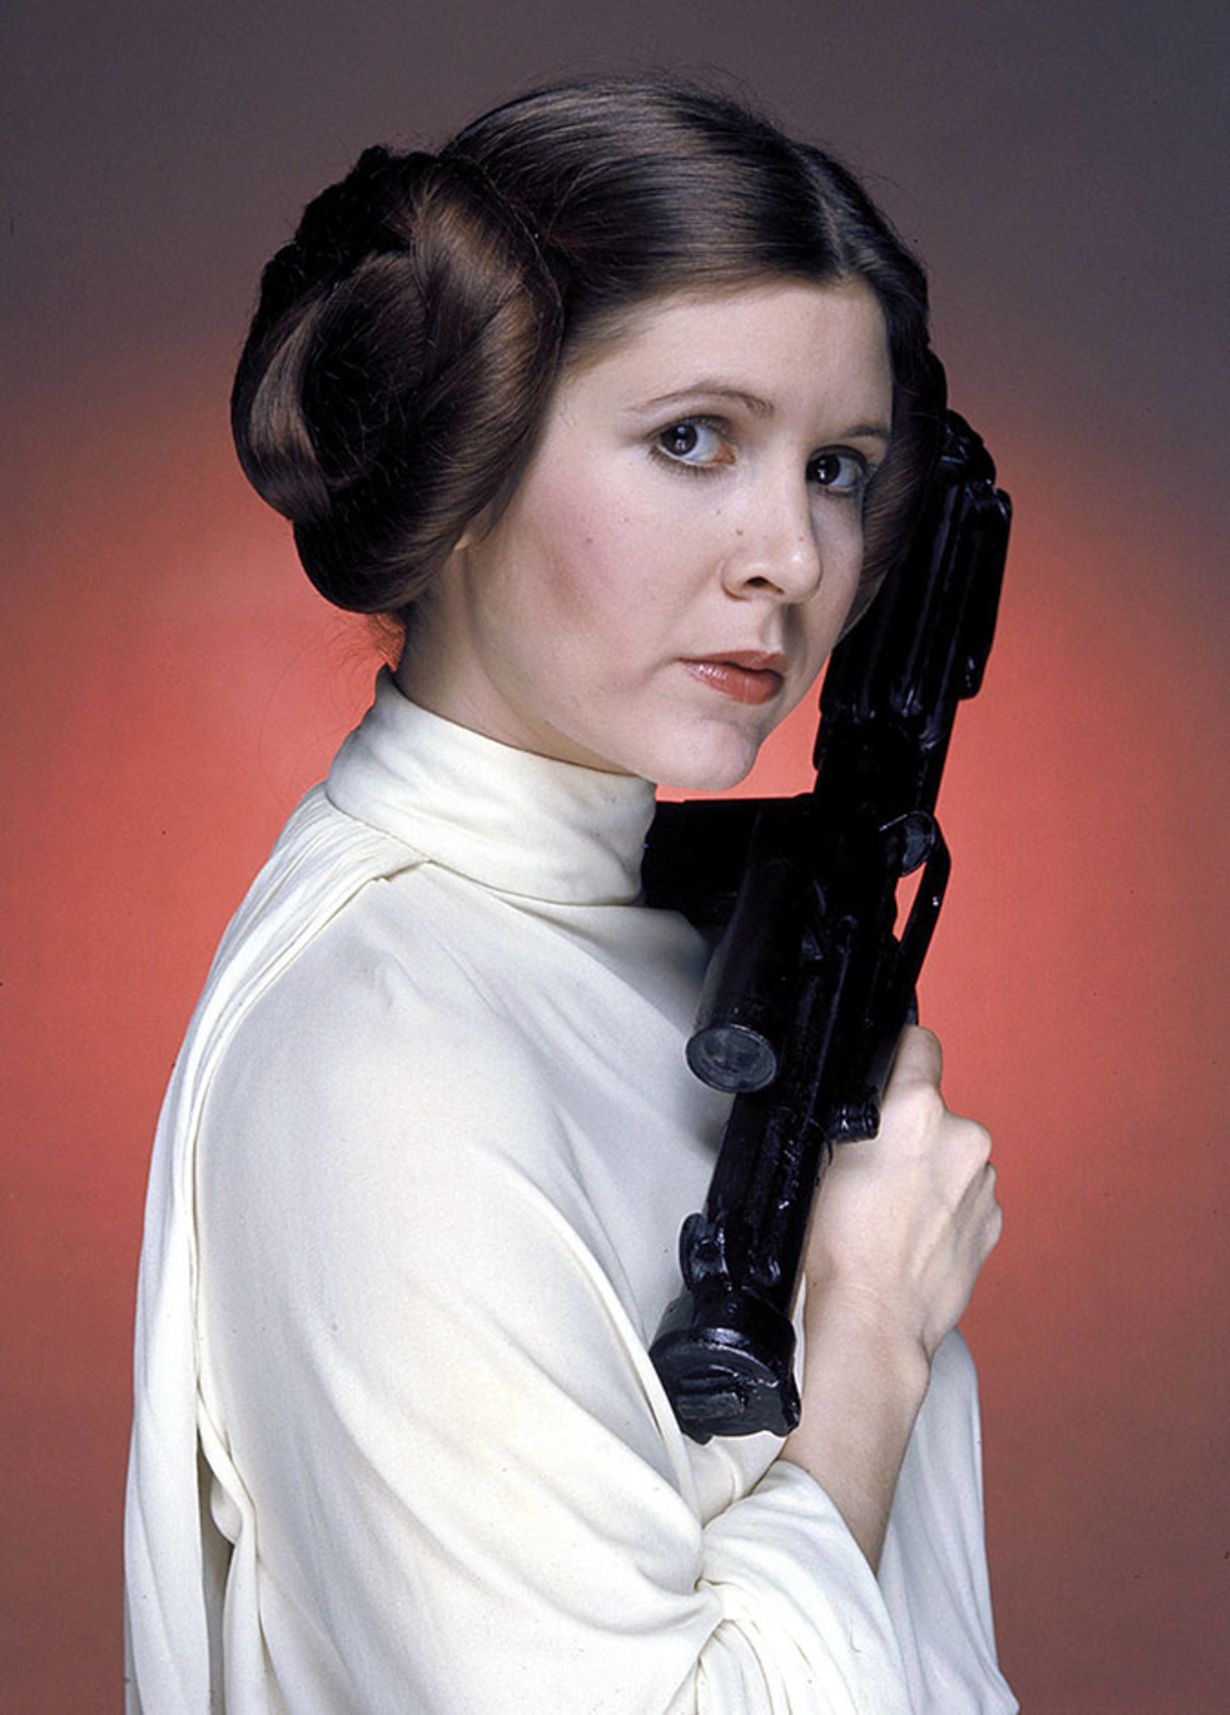 Remembering Carrie Fisher Through Her Best Princess Leia Moments (RIP 10/21/56 - 12/27/16)